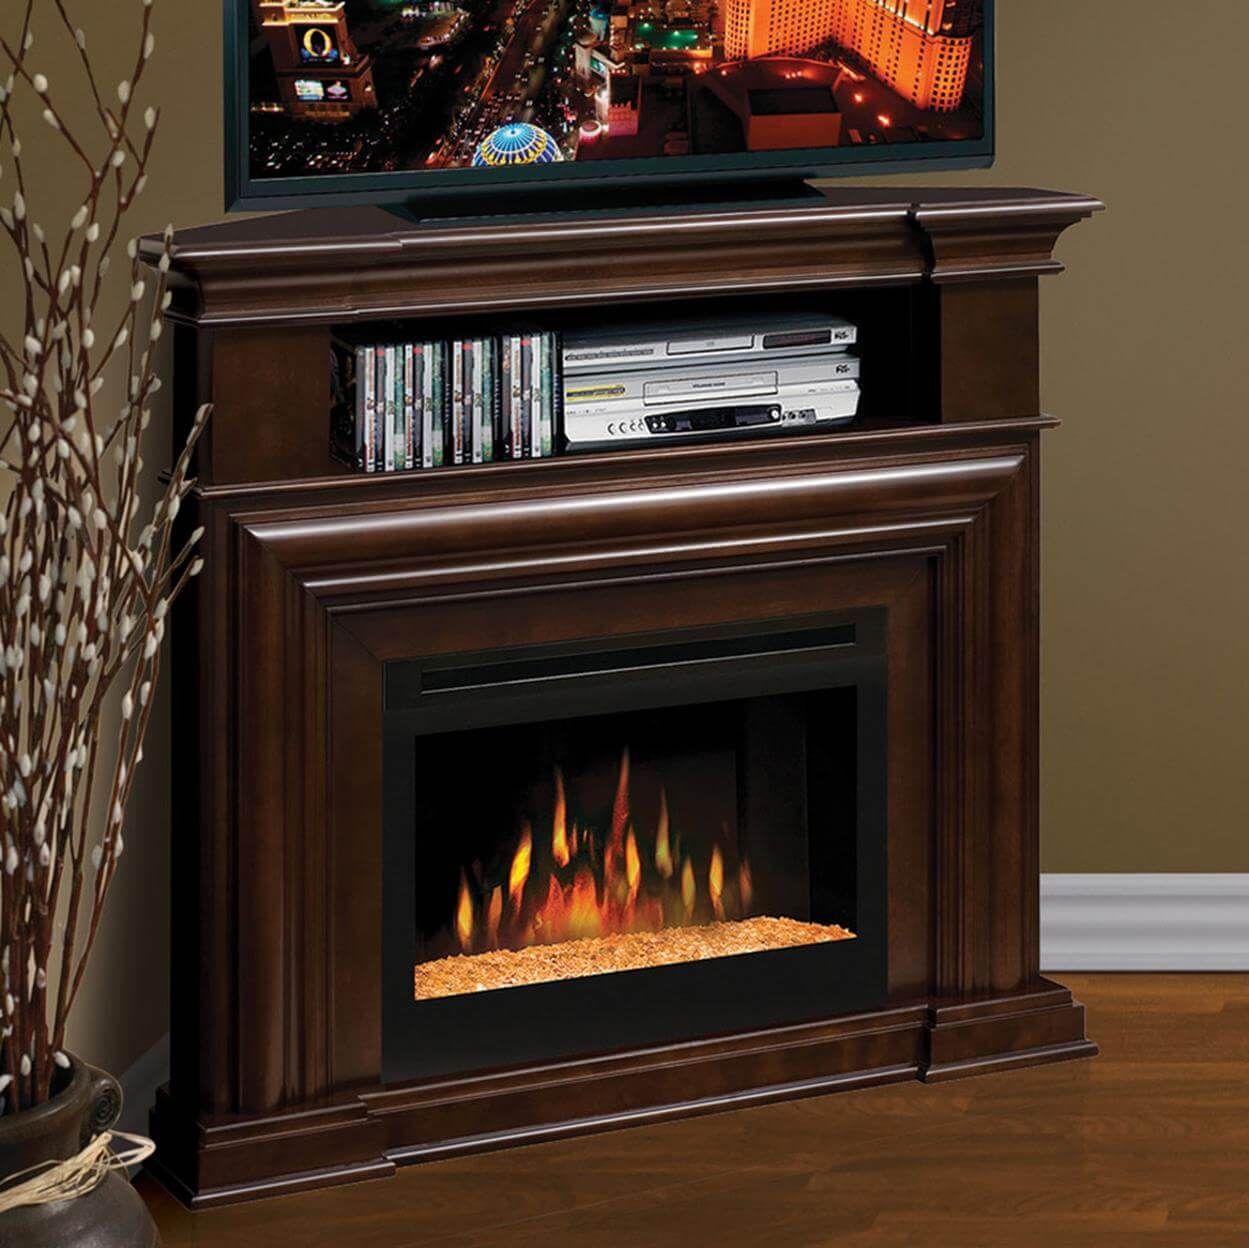 34 Enhance Your Living Space With Amazing Lowes Fireplace Tv Stand